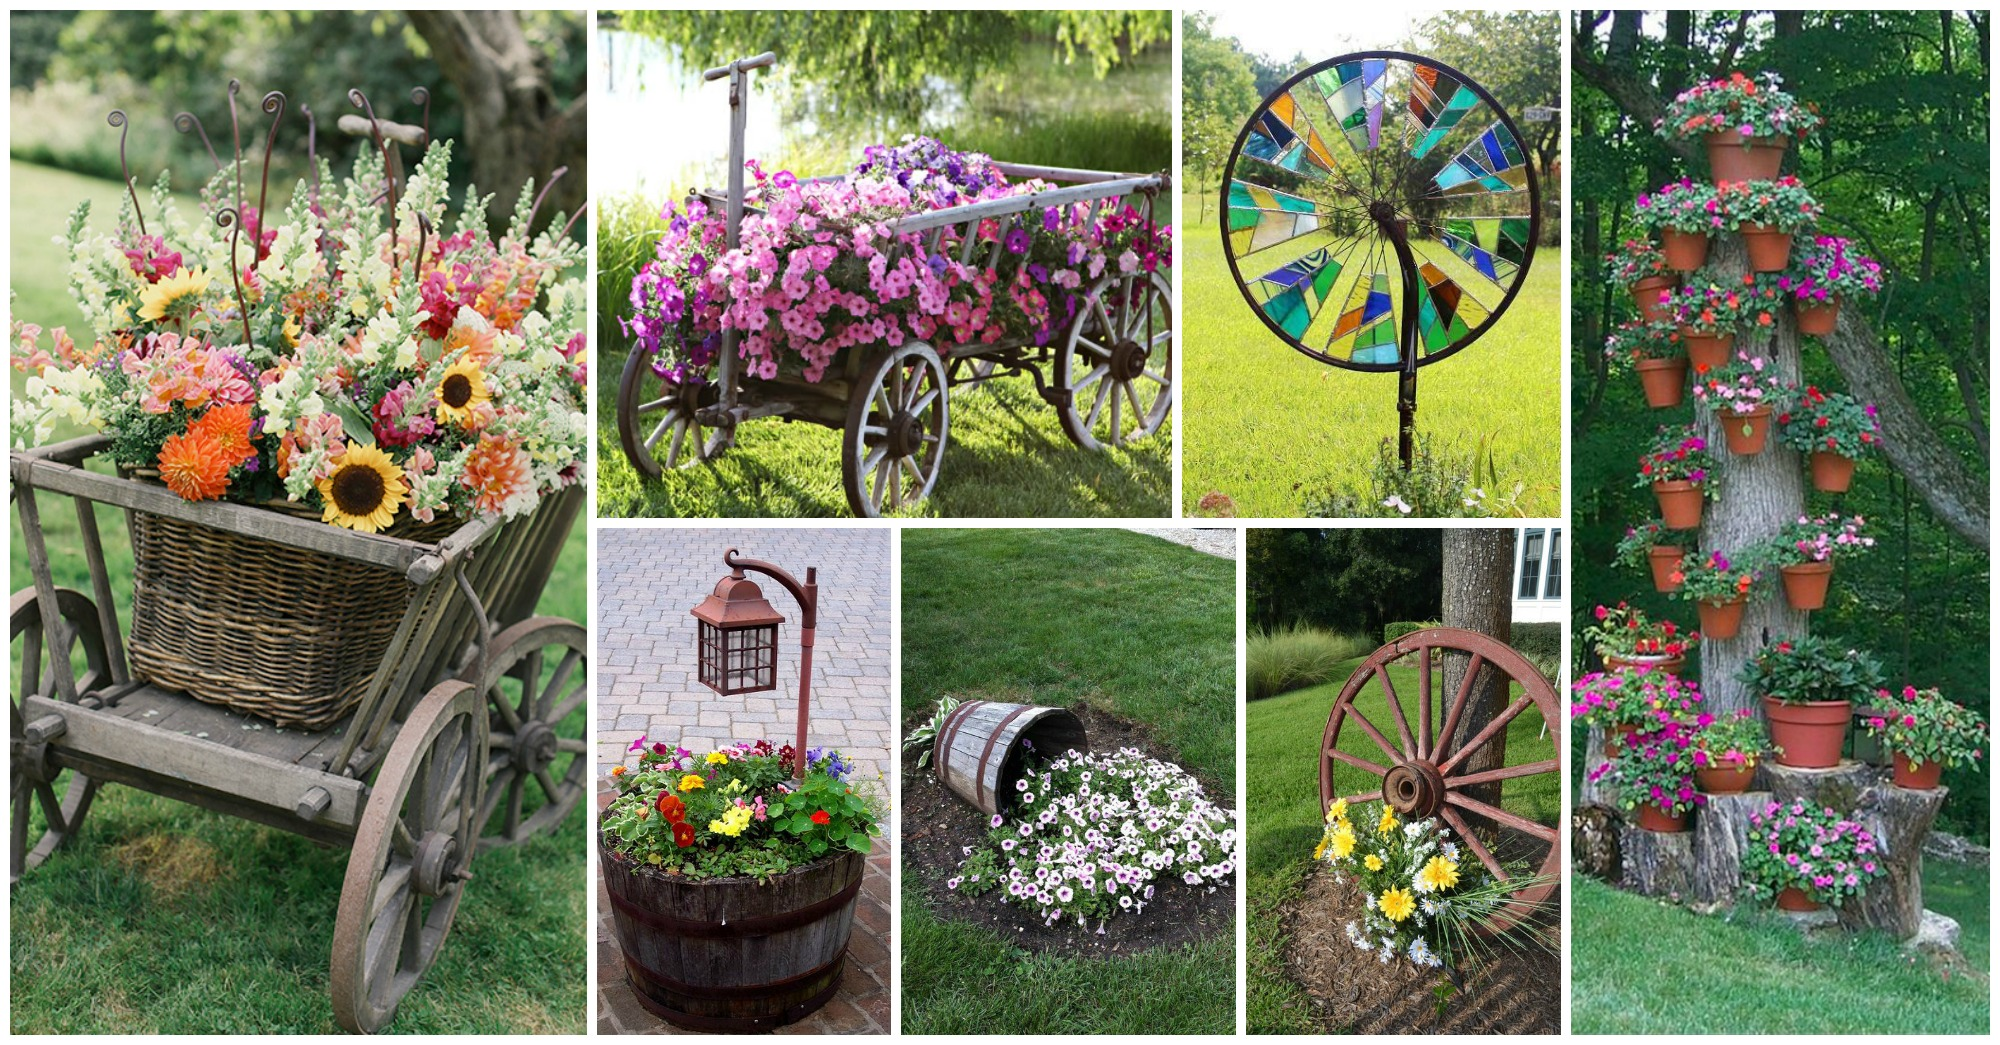 Genuine Diy Projects To Enhance Your Yard Without Spending A Dime Posts Diy Outdoor Decor Tag Dreamer Diy Backyard Decoration Ideas Diy Backyard Decorations outdoor Diy Backyard Decor